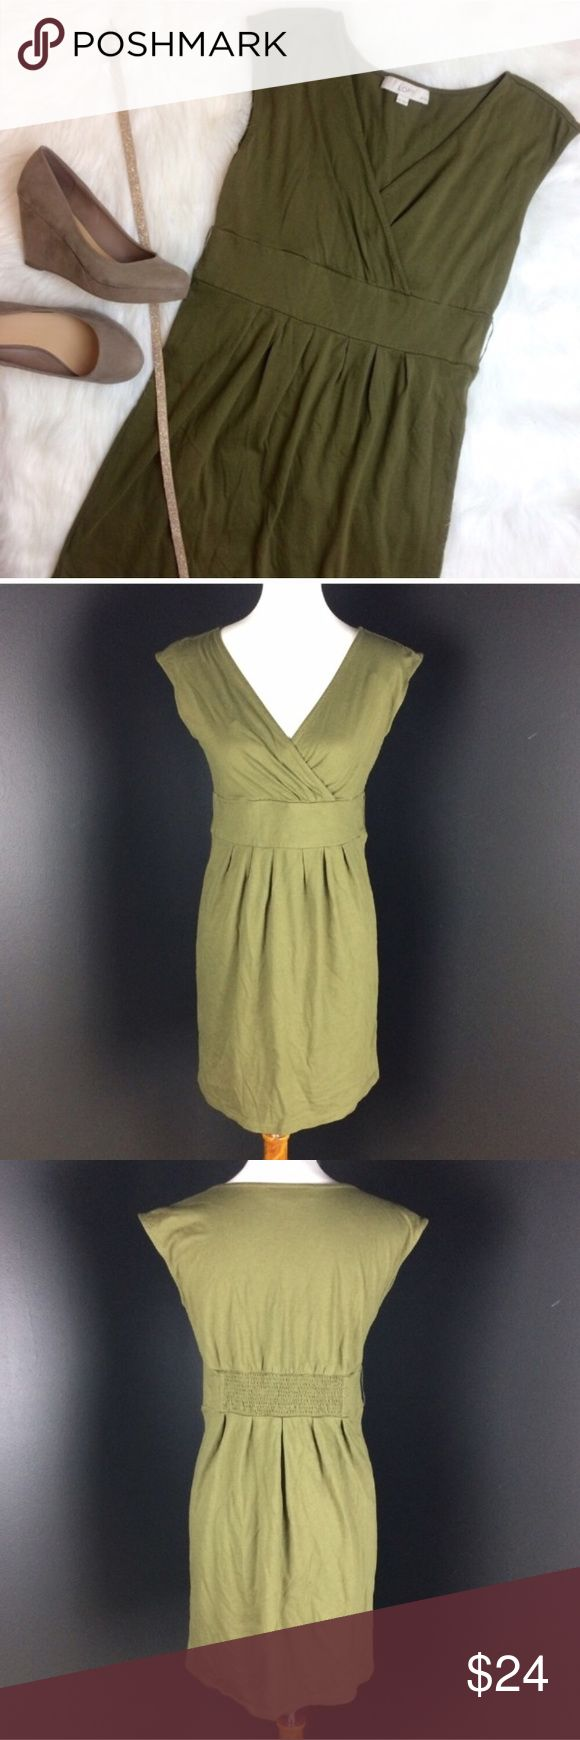 """LOFT Olive Green Dress Perfect olive green dress from the Loft. Has crossover style v-neck. Has loops for a belt or can be worn without a belt. Excellent condition. Size Medium Petite. Armpit to armpit is 17 3/4"""", waist is 15"""", length is 32.5"""". LOFT Dresses"""